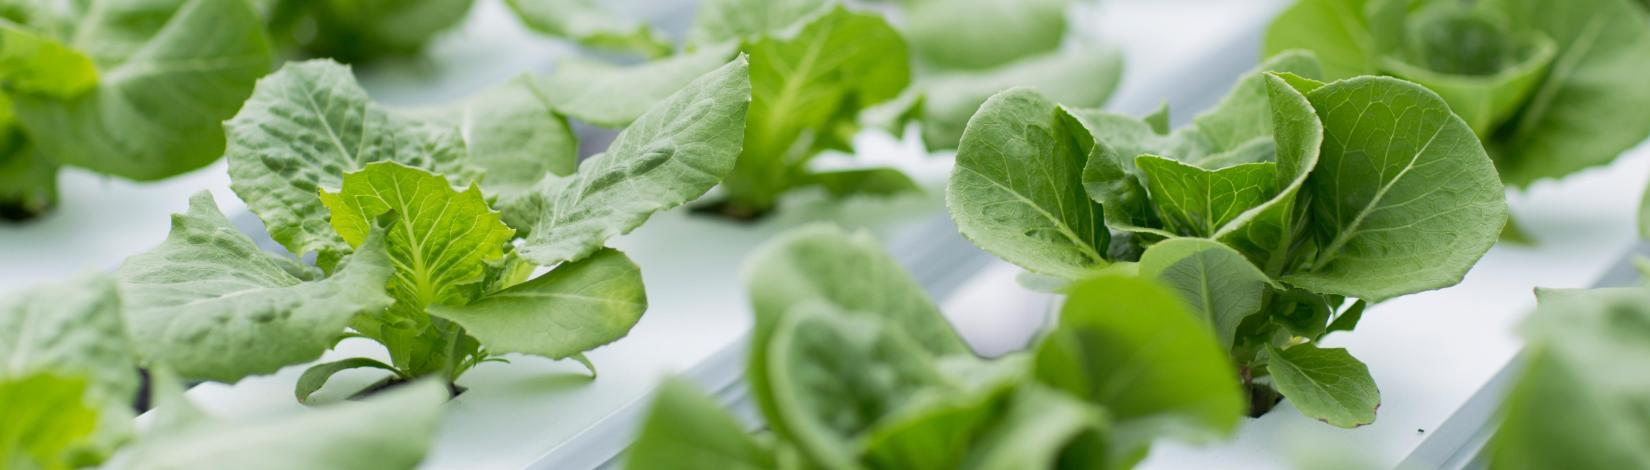 Hydroponic Solutions for Urban Food Production - UF/IFAS